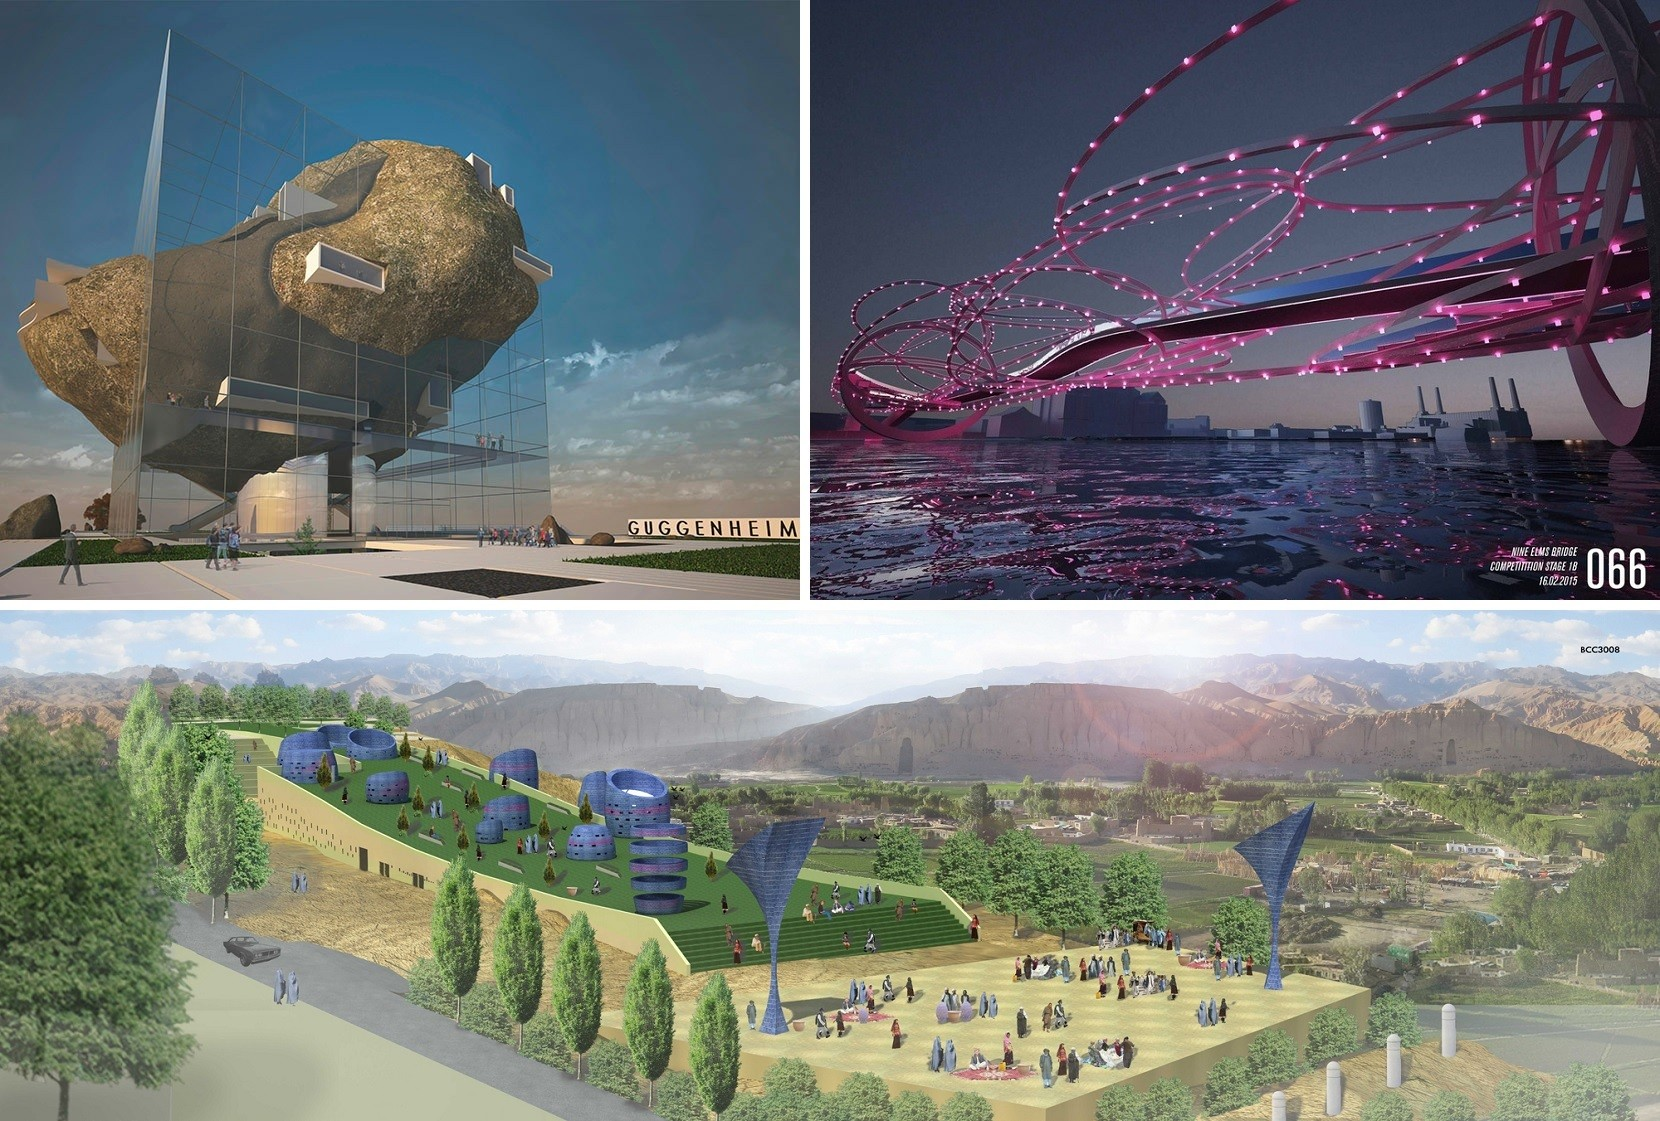 Opinion: Transparency In Architecture Competitions Is A Bad Thing, Clockwise from top left: Guggenheim Helsinki entry GH-3355371286; Nine Elms Bridge entry number 66; and Bamiyan Cultural Center entry BCC3008. Image Courtesy of Malcolm Reading Consultants, Nine Elms Vauxhall Partnership and UNESCO